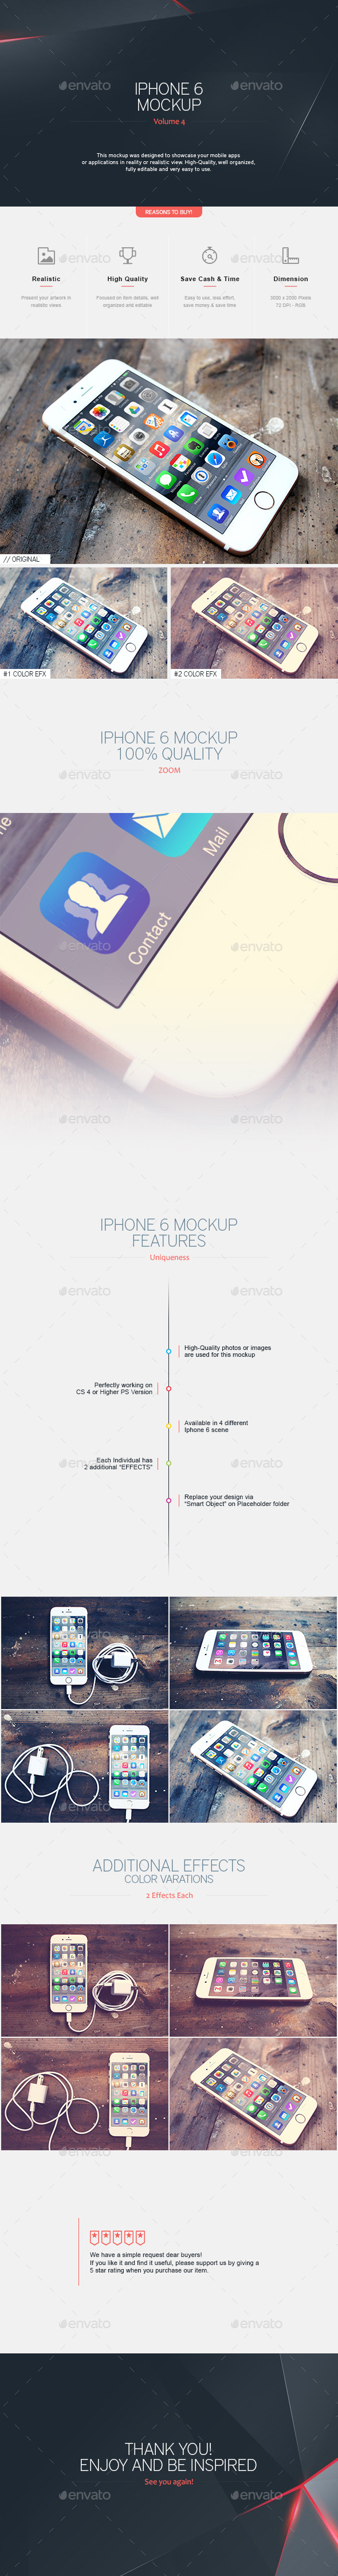 Iphone 6 Mockup V.4 - Mobile Displays